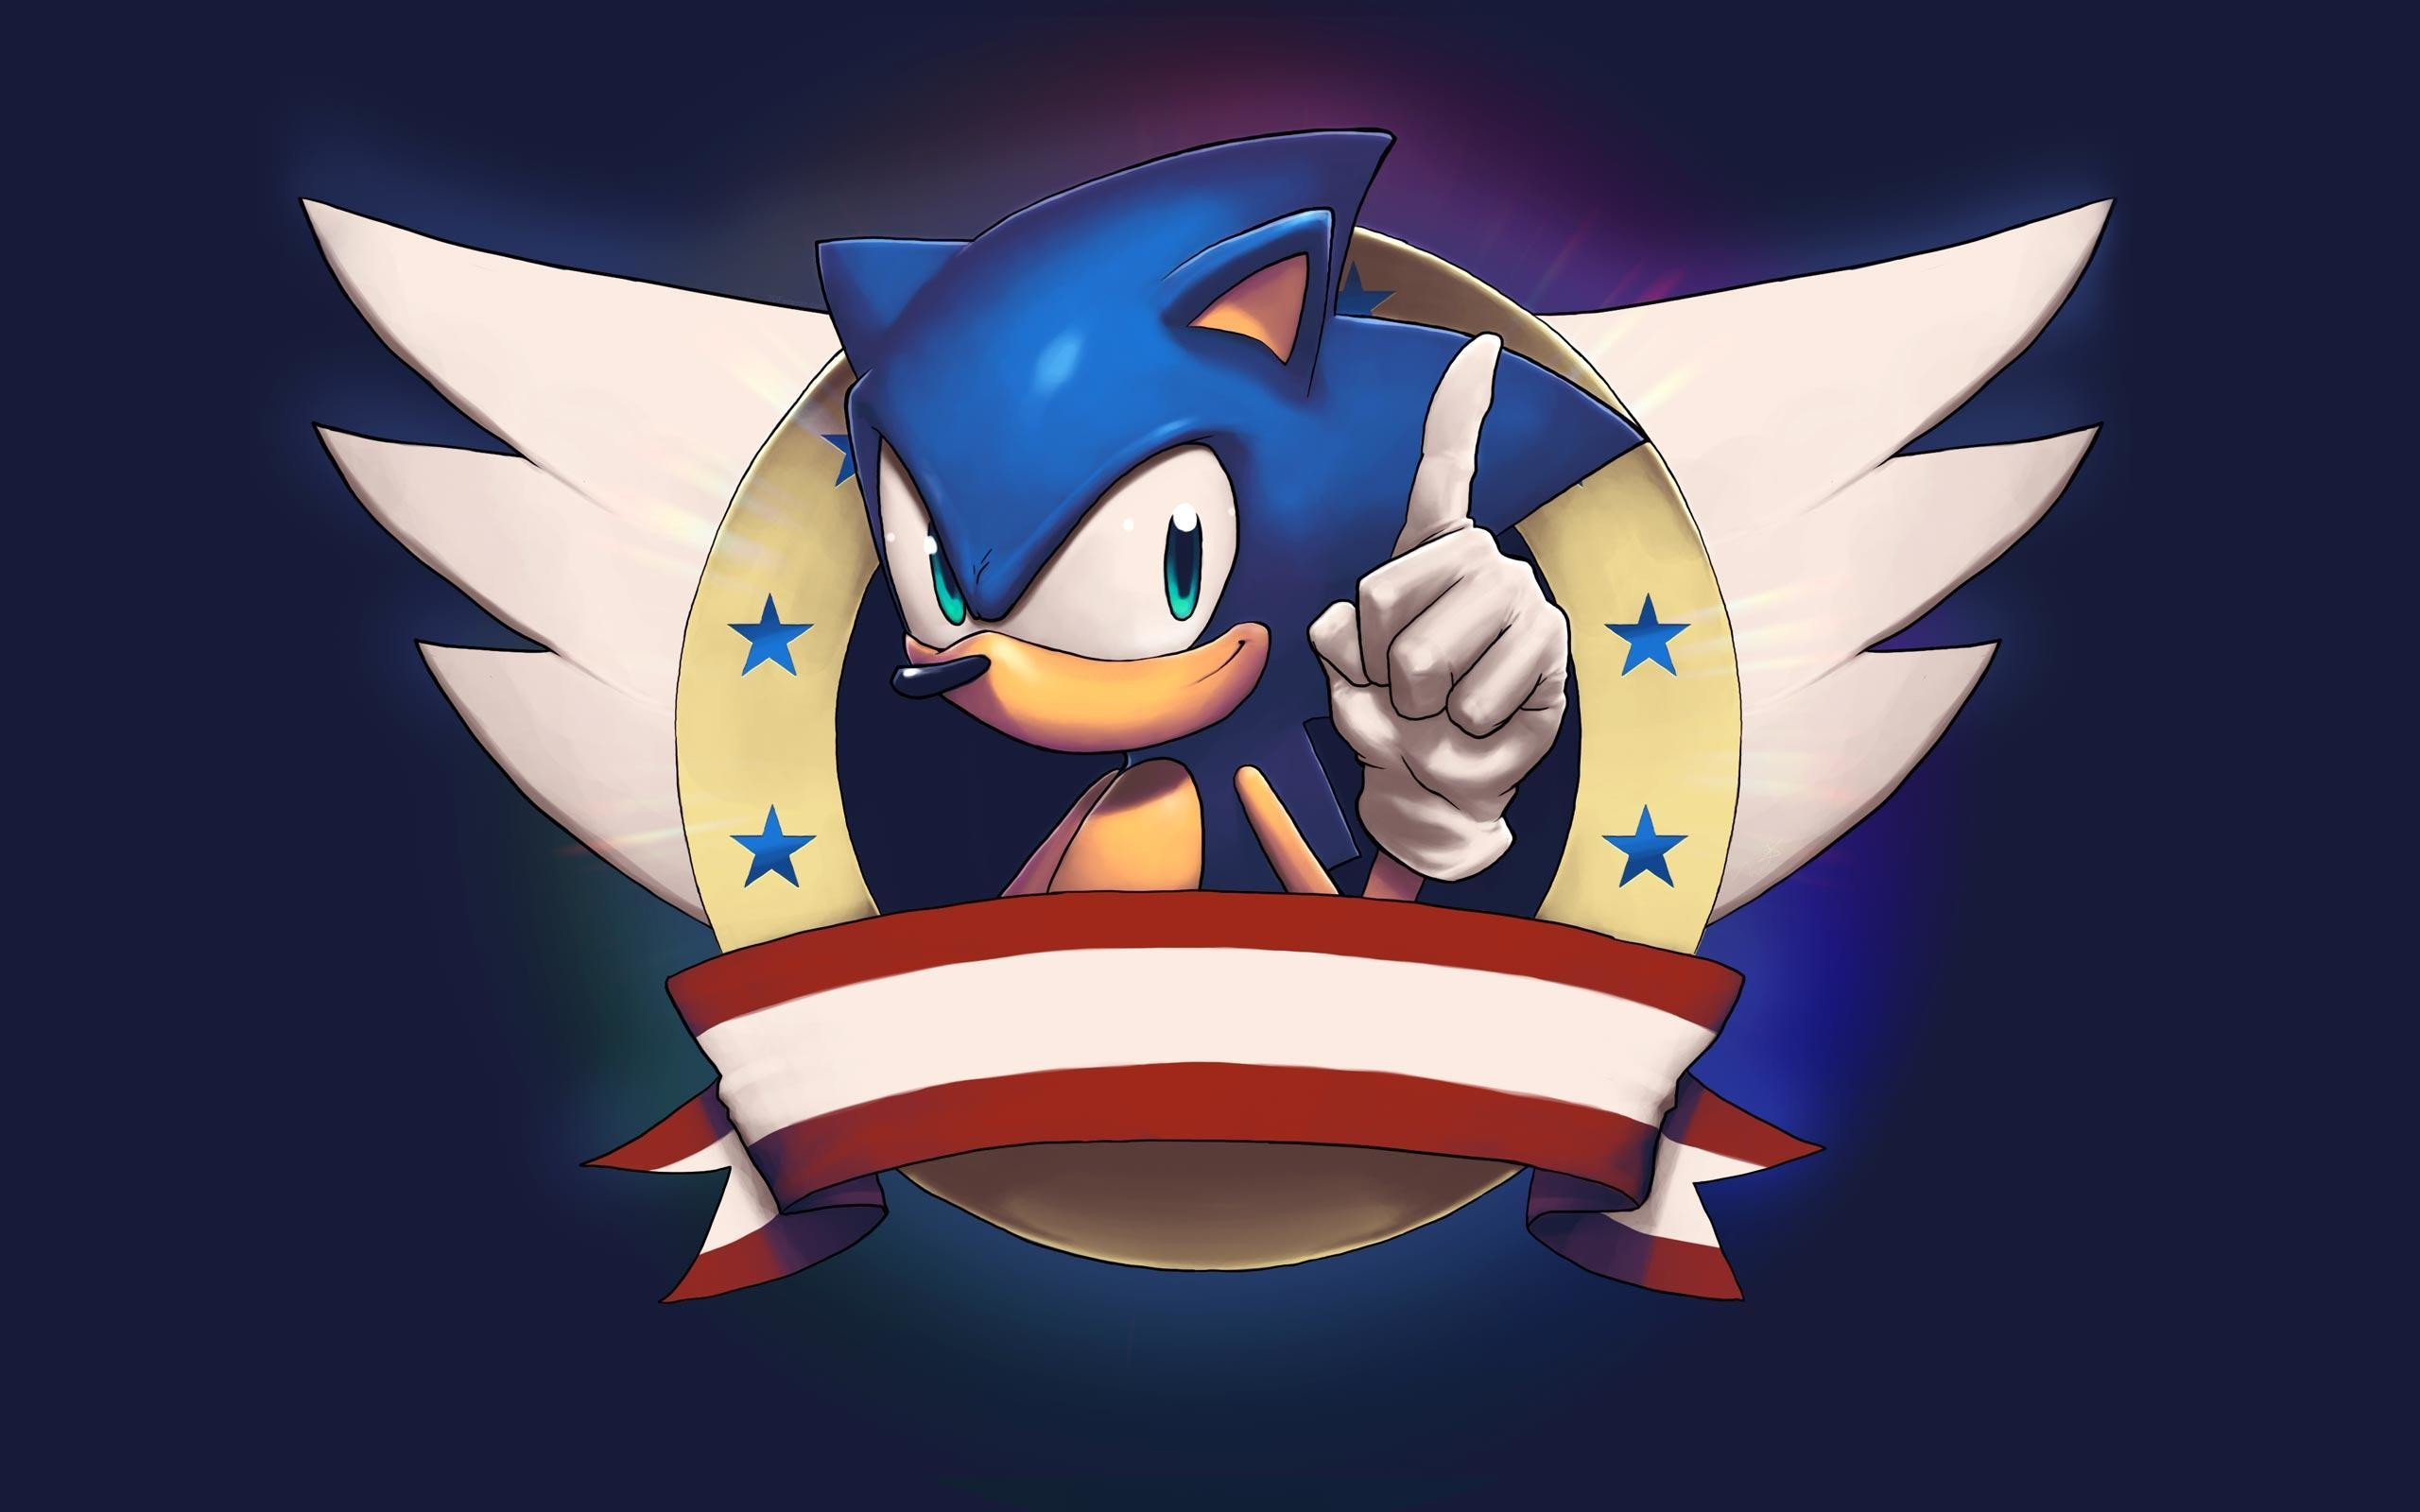 Wallpapers For > Classic Sonic The Hedgehog Wallpaper Hd